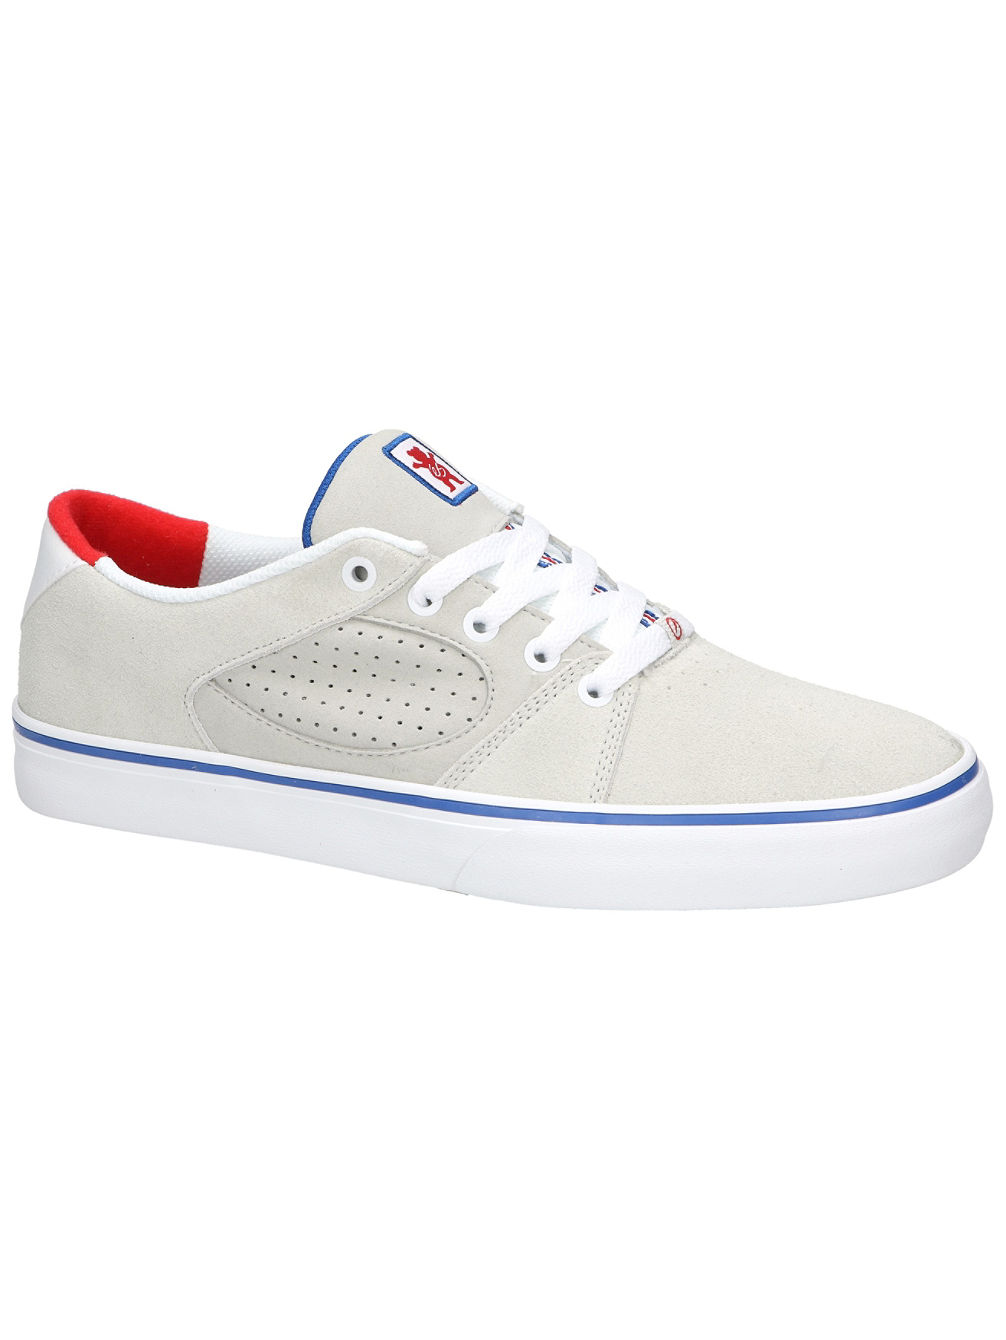 X Grizzly Square Three Skate Shoes